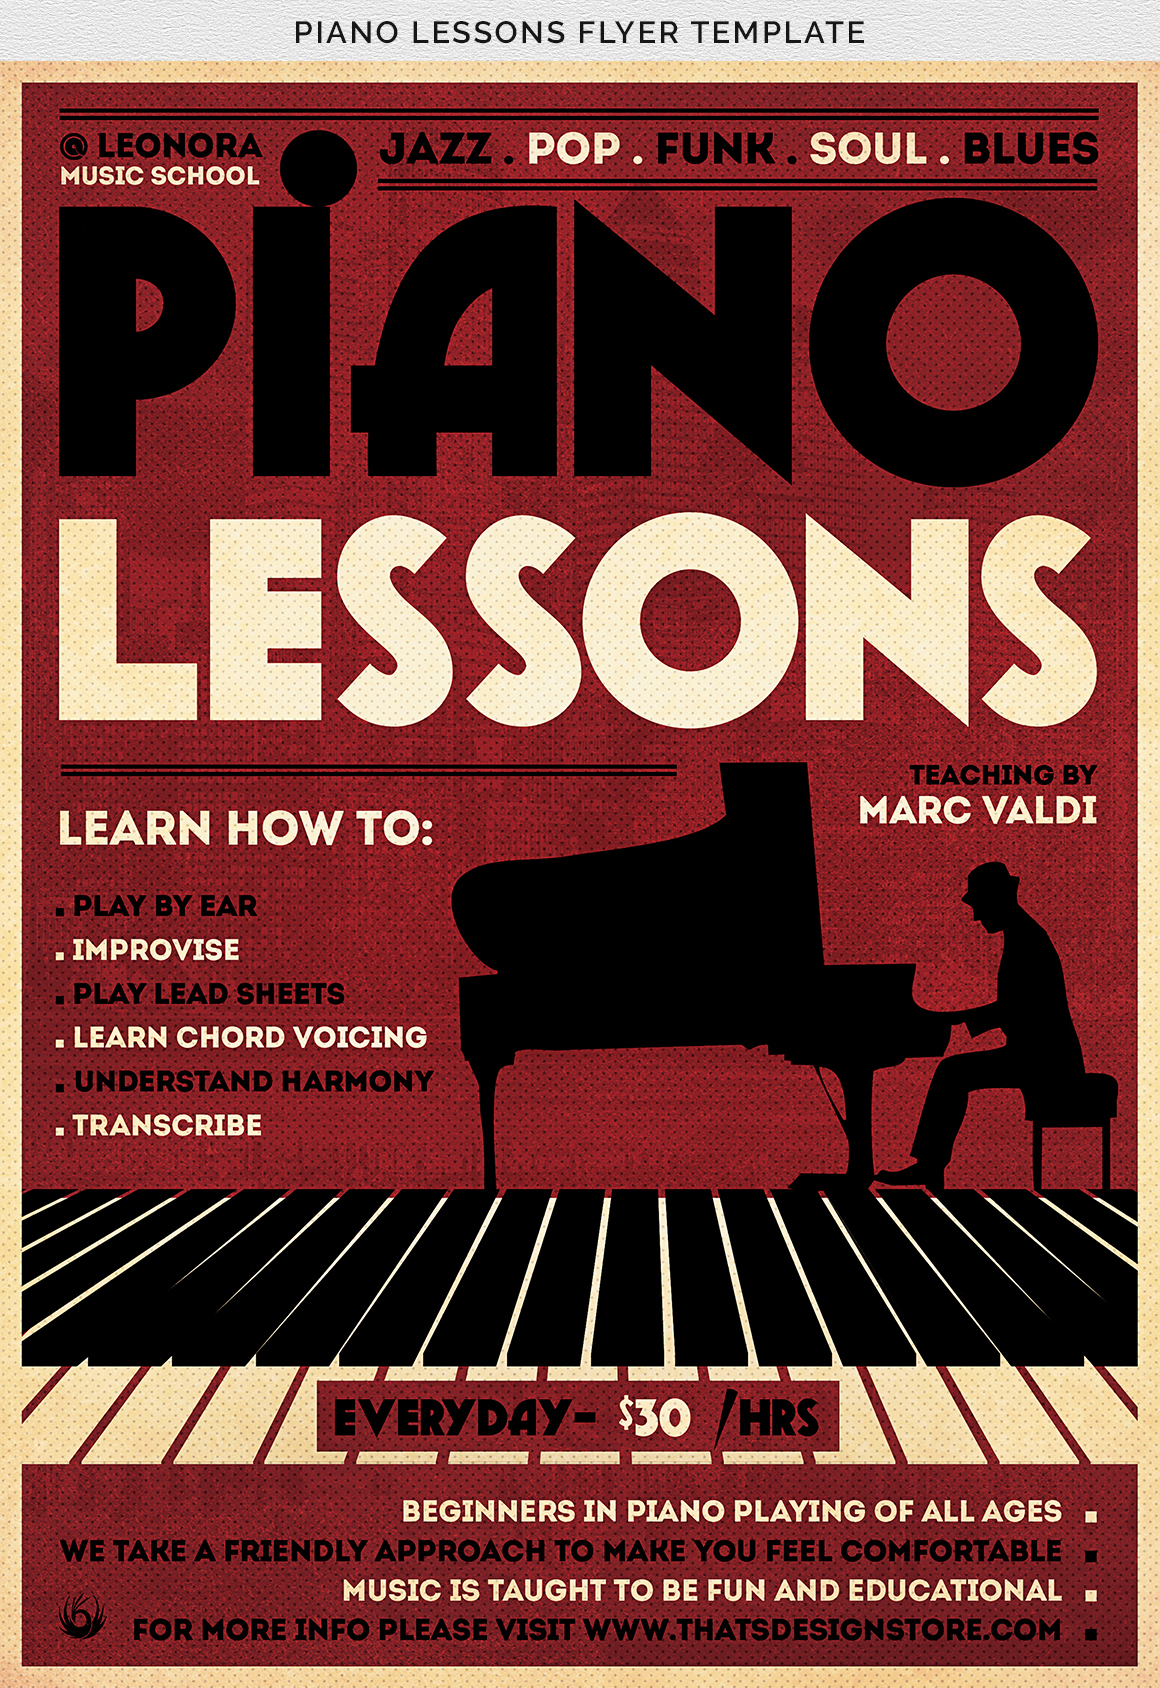 Piano Lessons Flyer Template example image 12